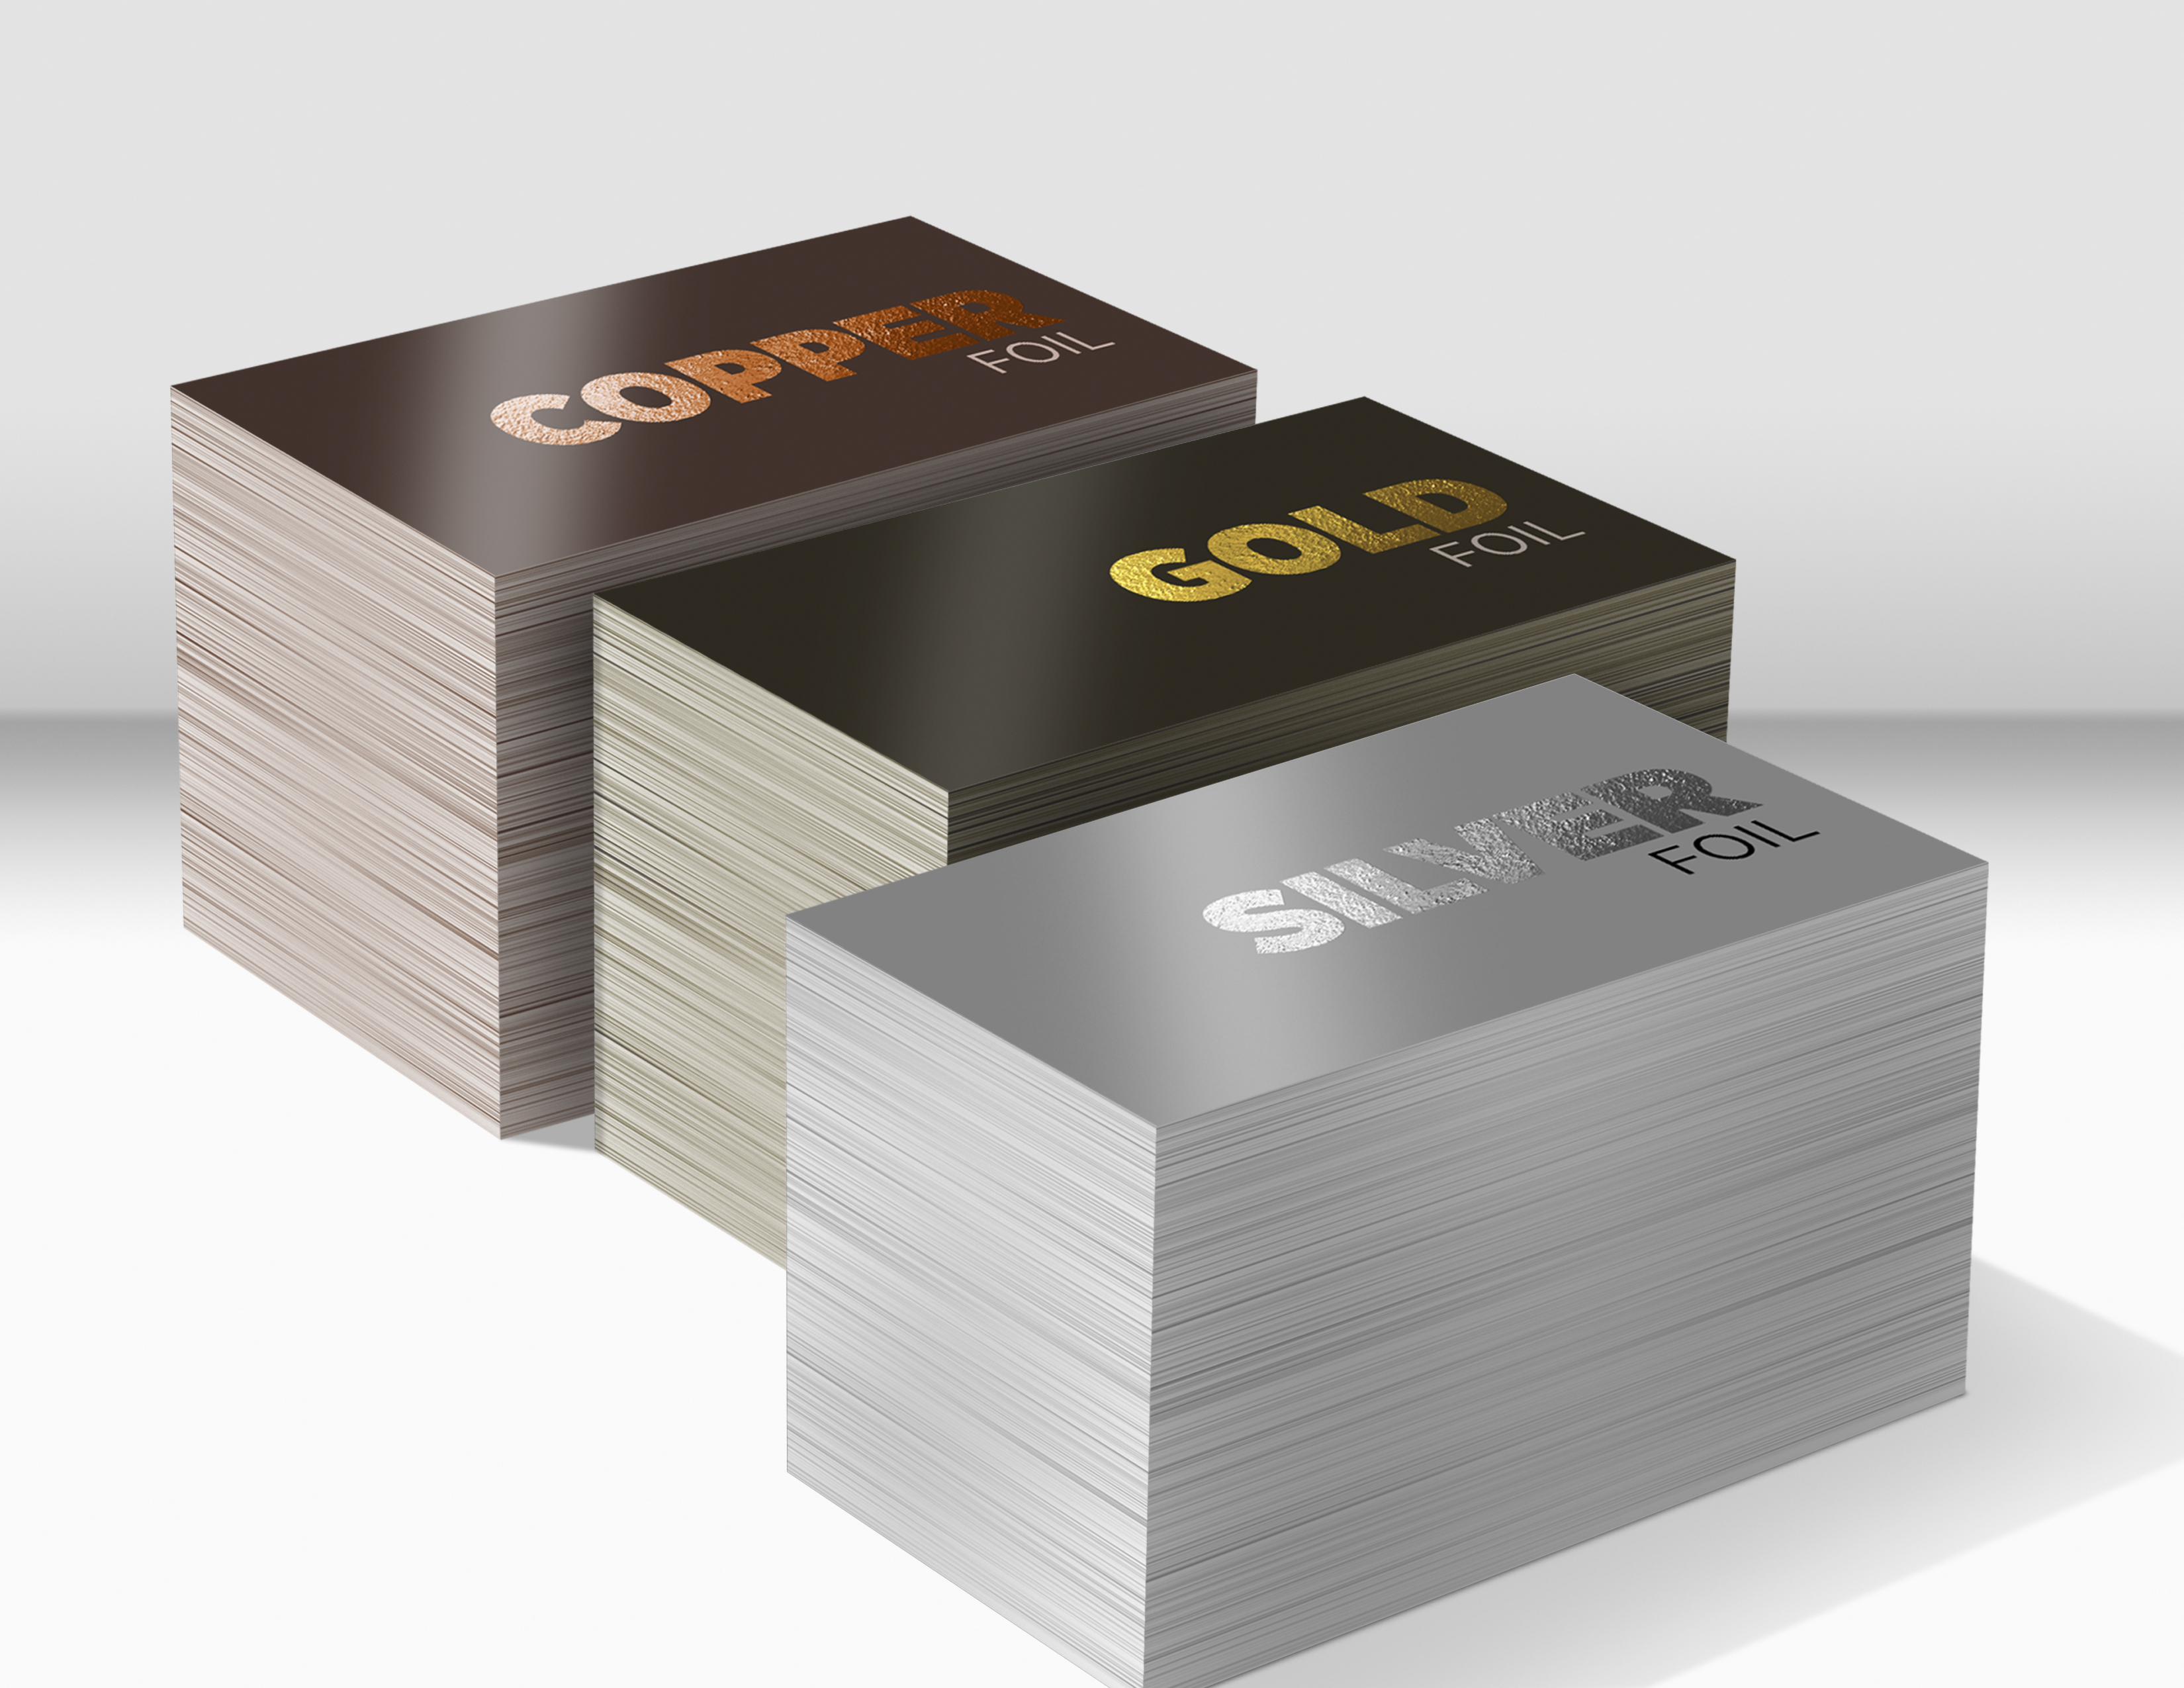 Printing services business cards letterhead notepads digital and foil printed business cards colourmoves